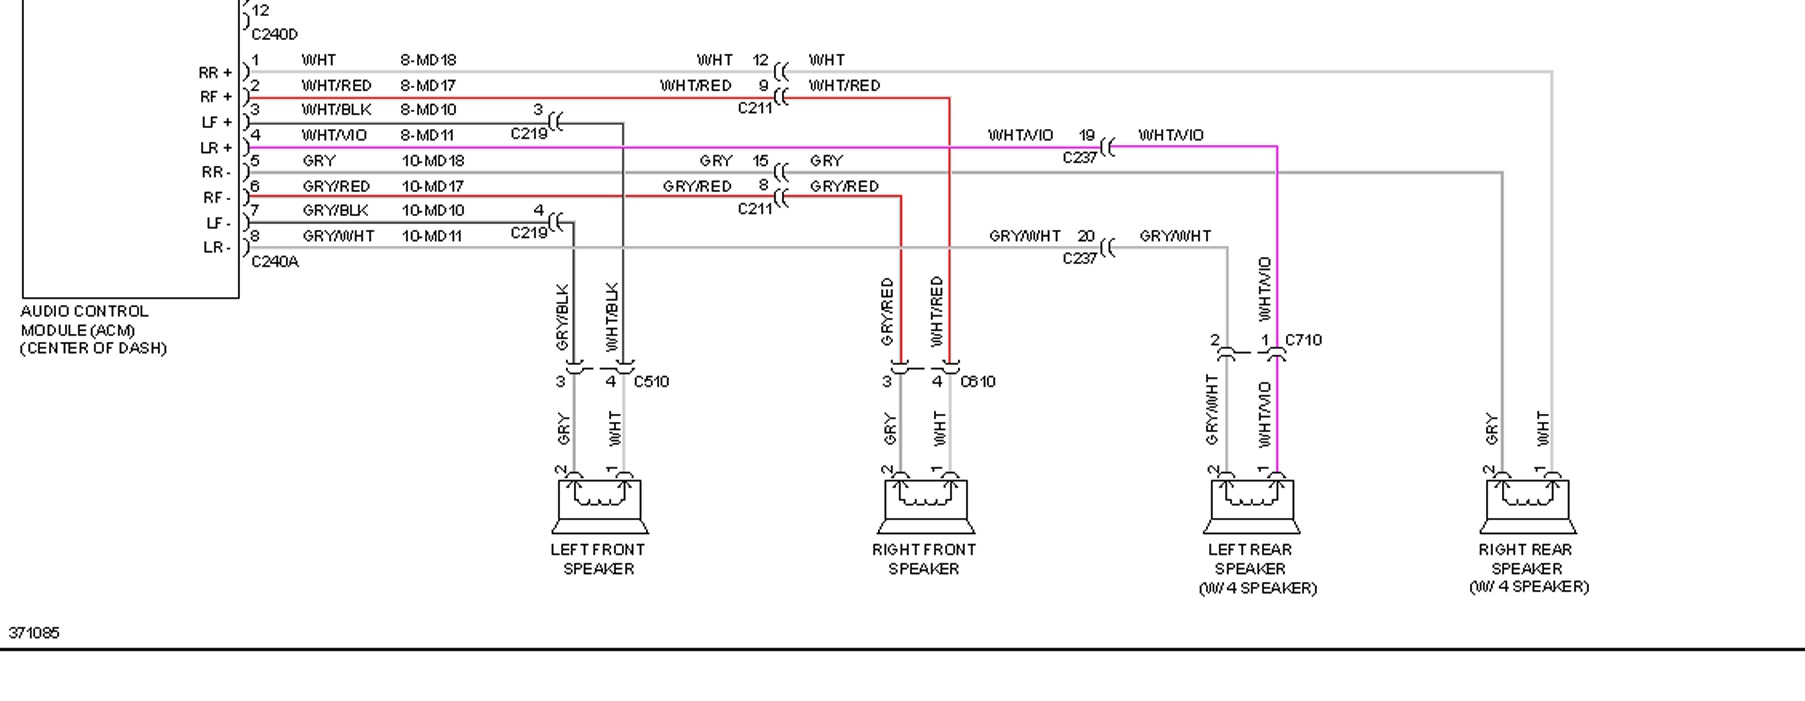 original 2012 ford transit stereo wiring hi i have a 2012 ford transit van 2013 ford wiring diagram at mr168.co